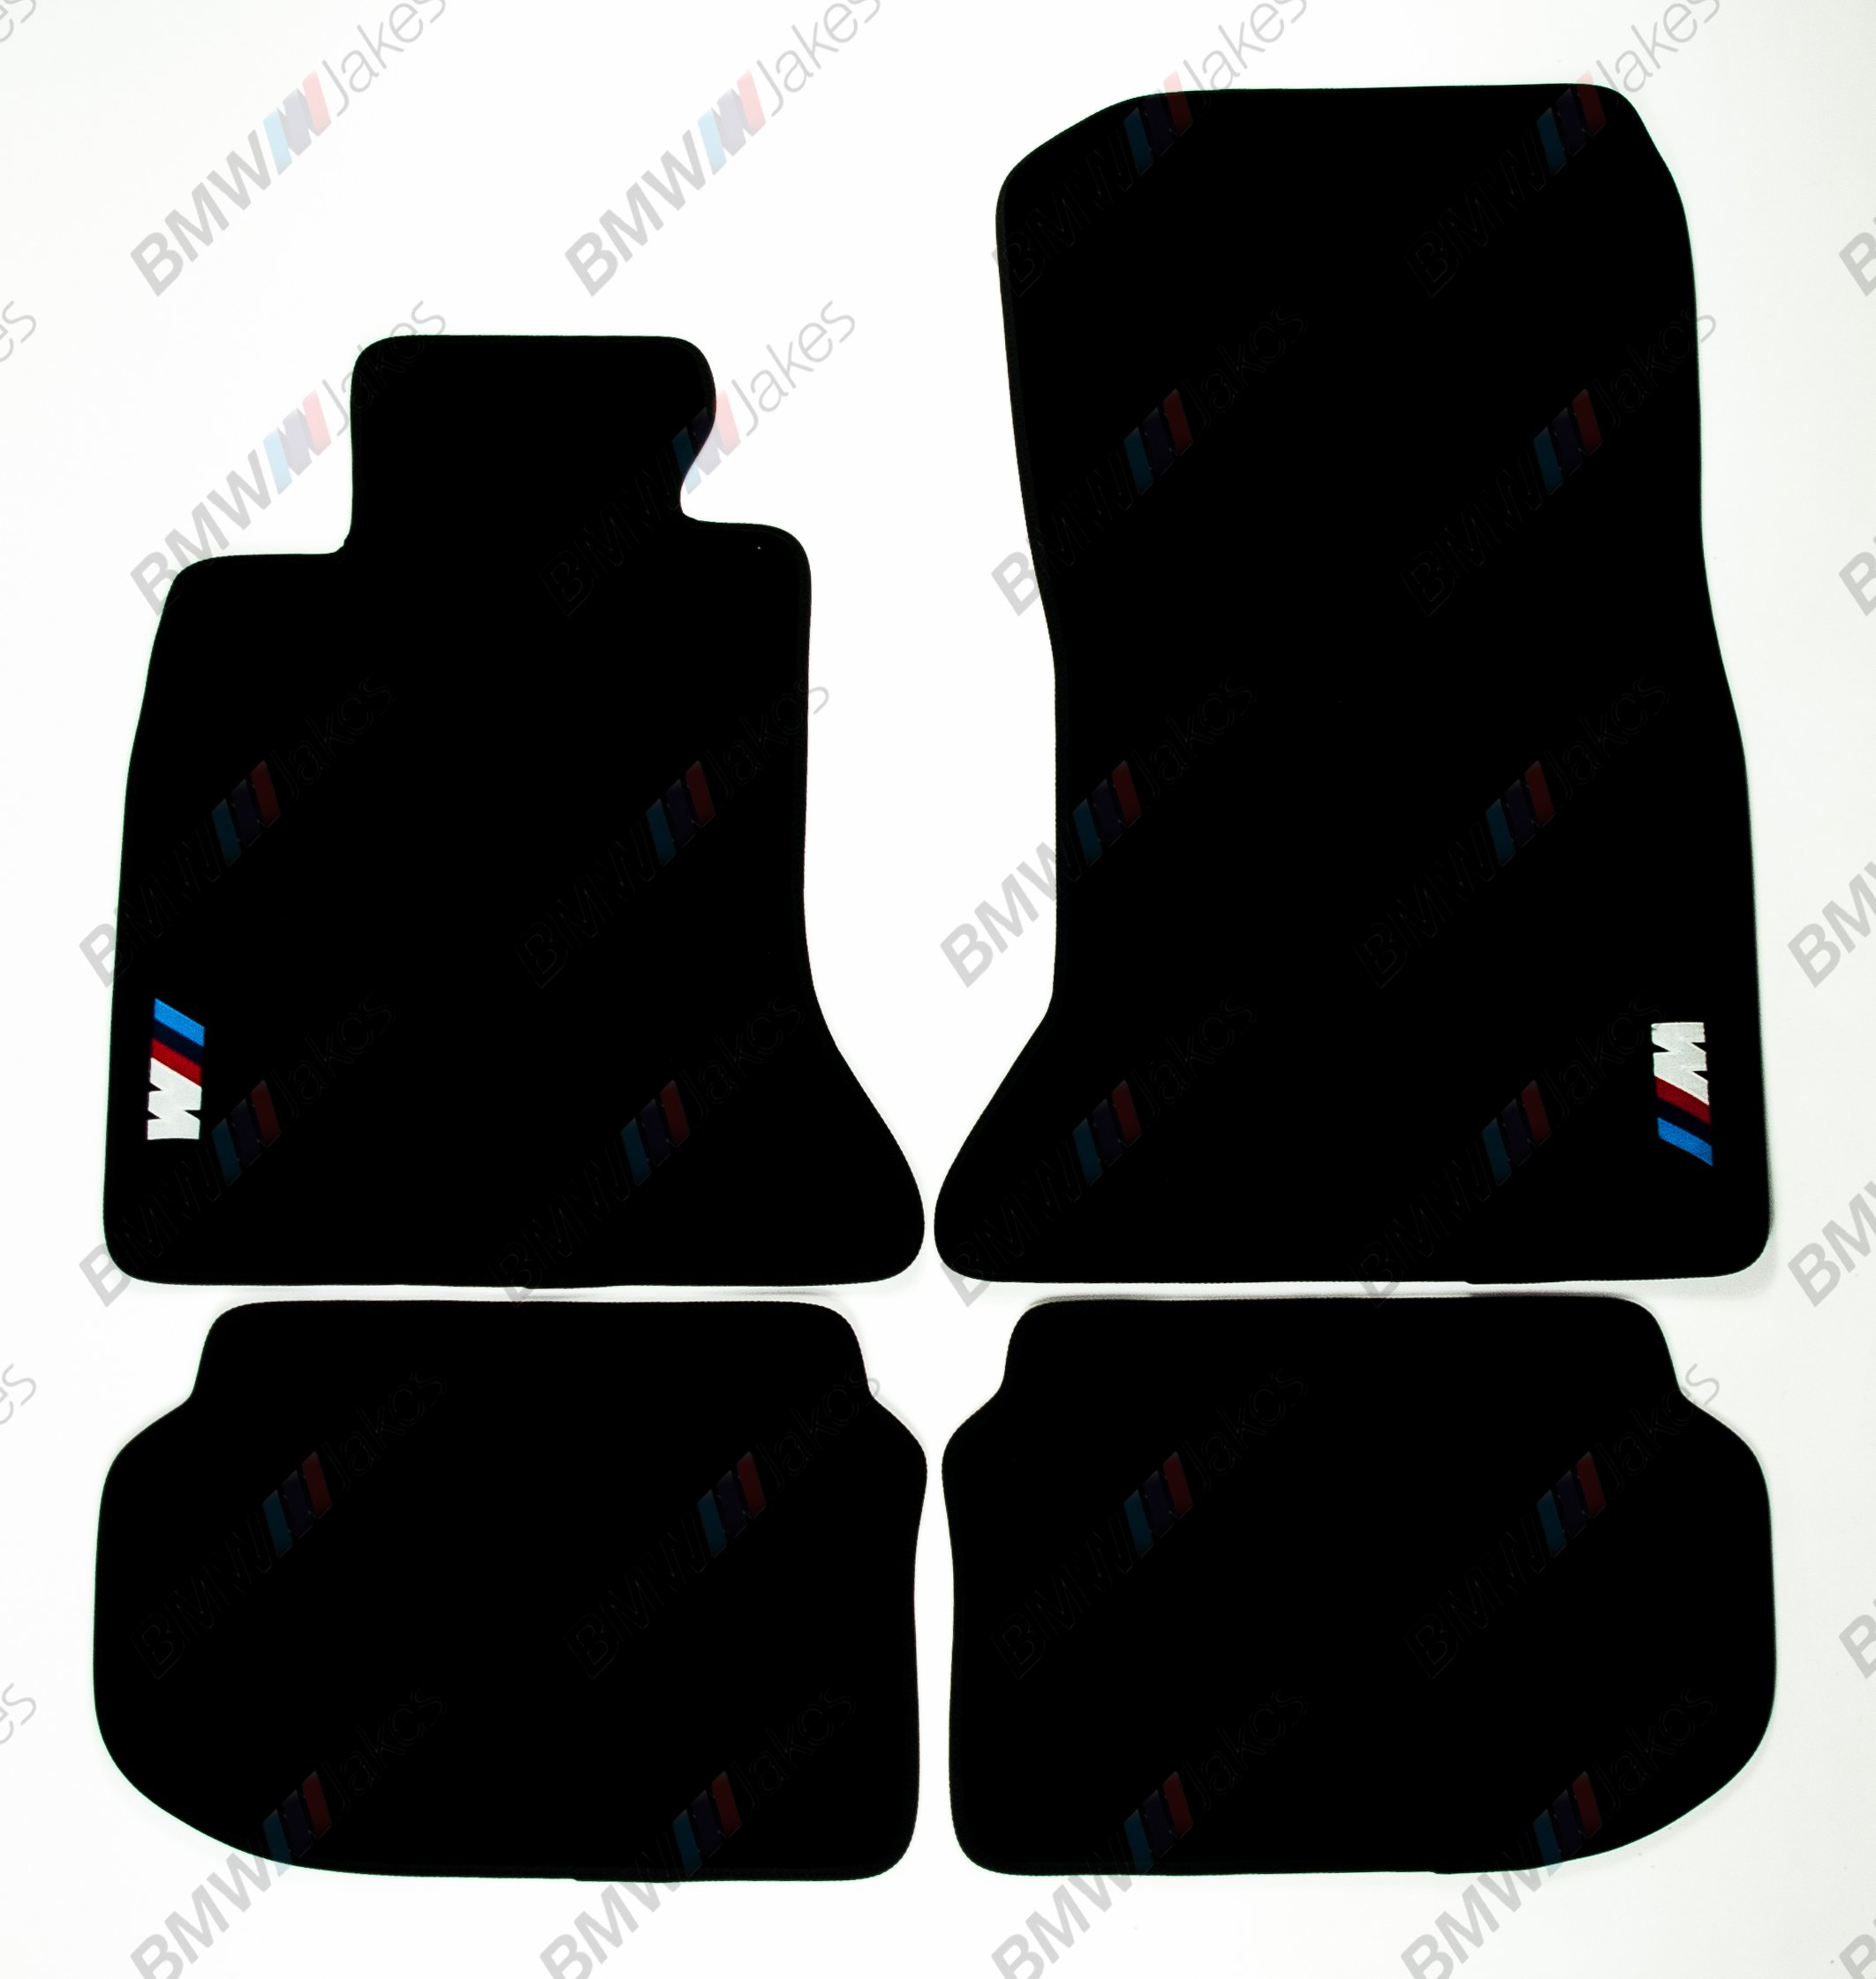 NEW CAR FLOOR MATS BLACK with ///M EMBLEM for BMW 5 series F10 2009, 2010, 2011, 2012, 2013, 2014, 2015, 2016